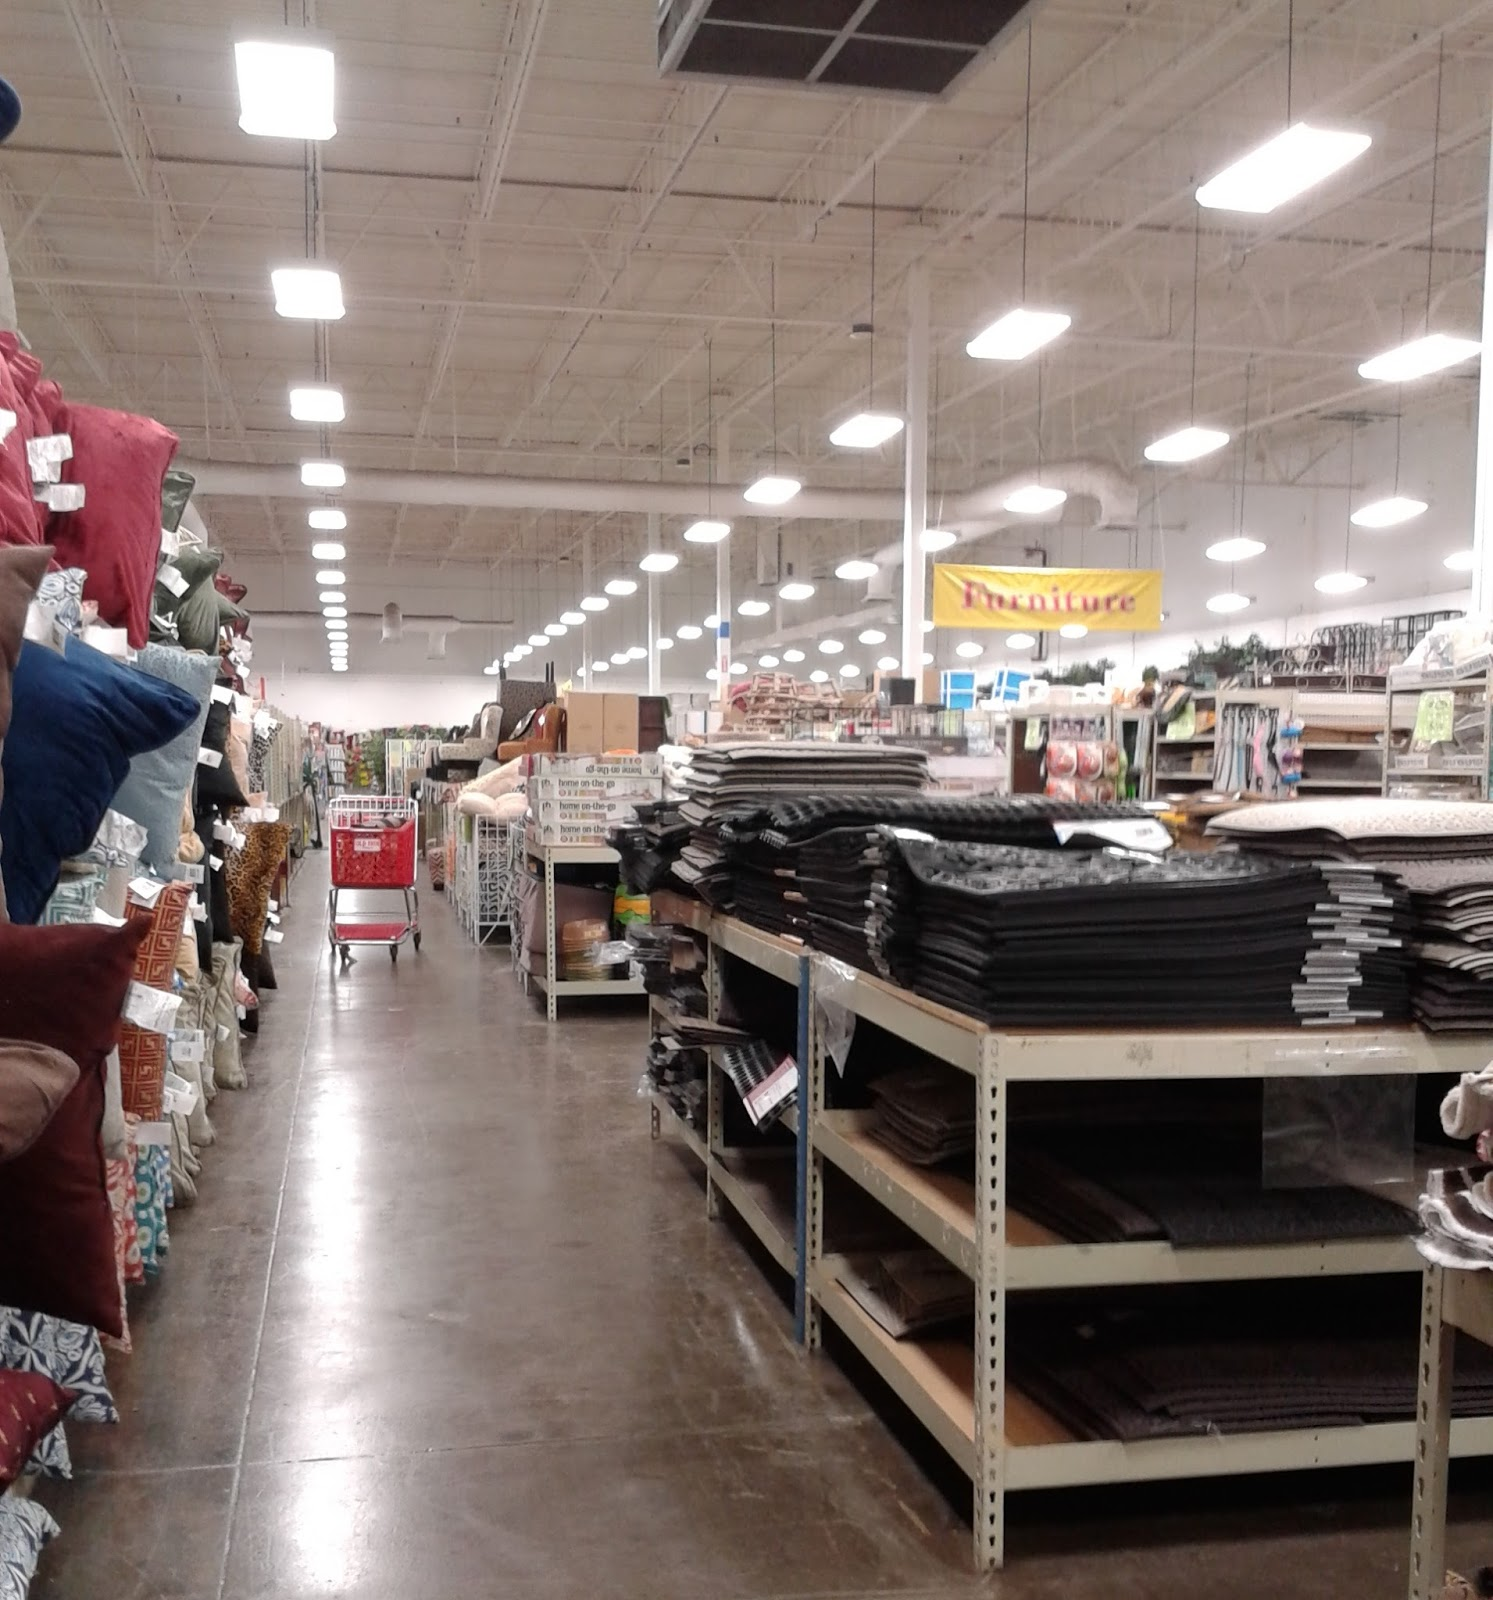 albertsons florida blog a look at the original safeway florida let s go back out into the main store and take a quick look around